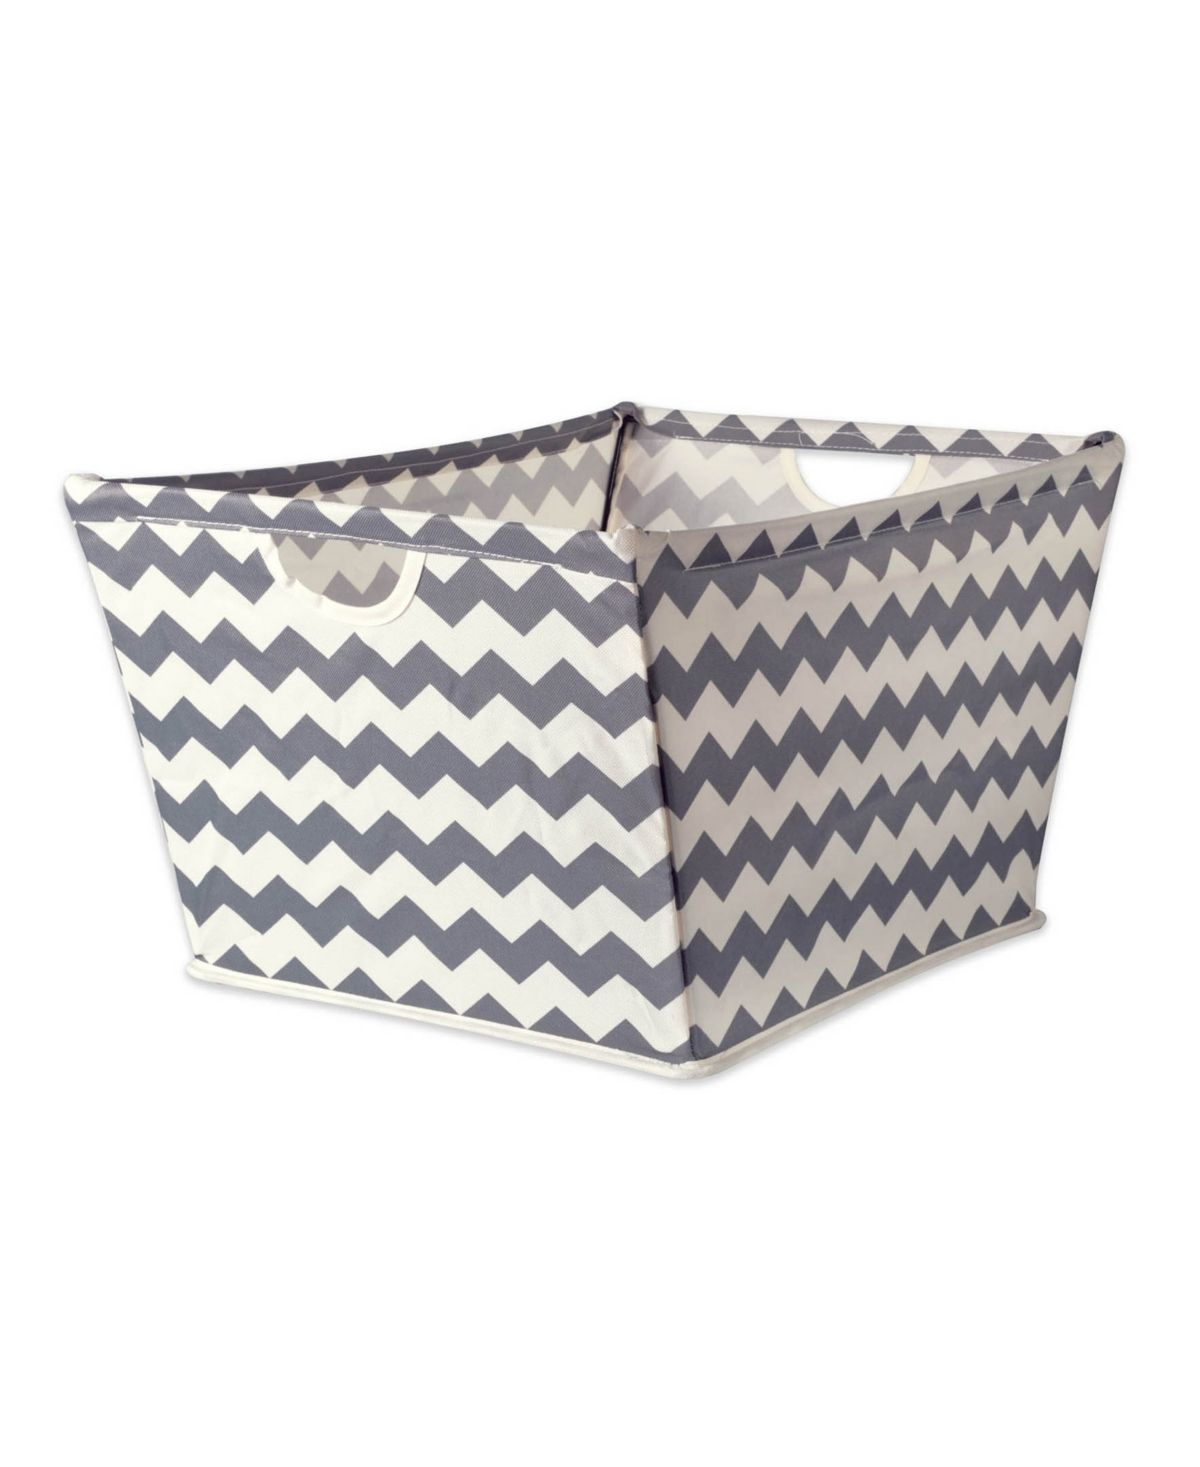 Constructed of polyester fabric and wrapped around a sturdy metal frame these trapezoid bins can match any storage task. Great for office storage solutions, nursery, closet, and laundry if you have a need, these bins can fill it.